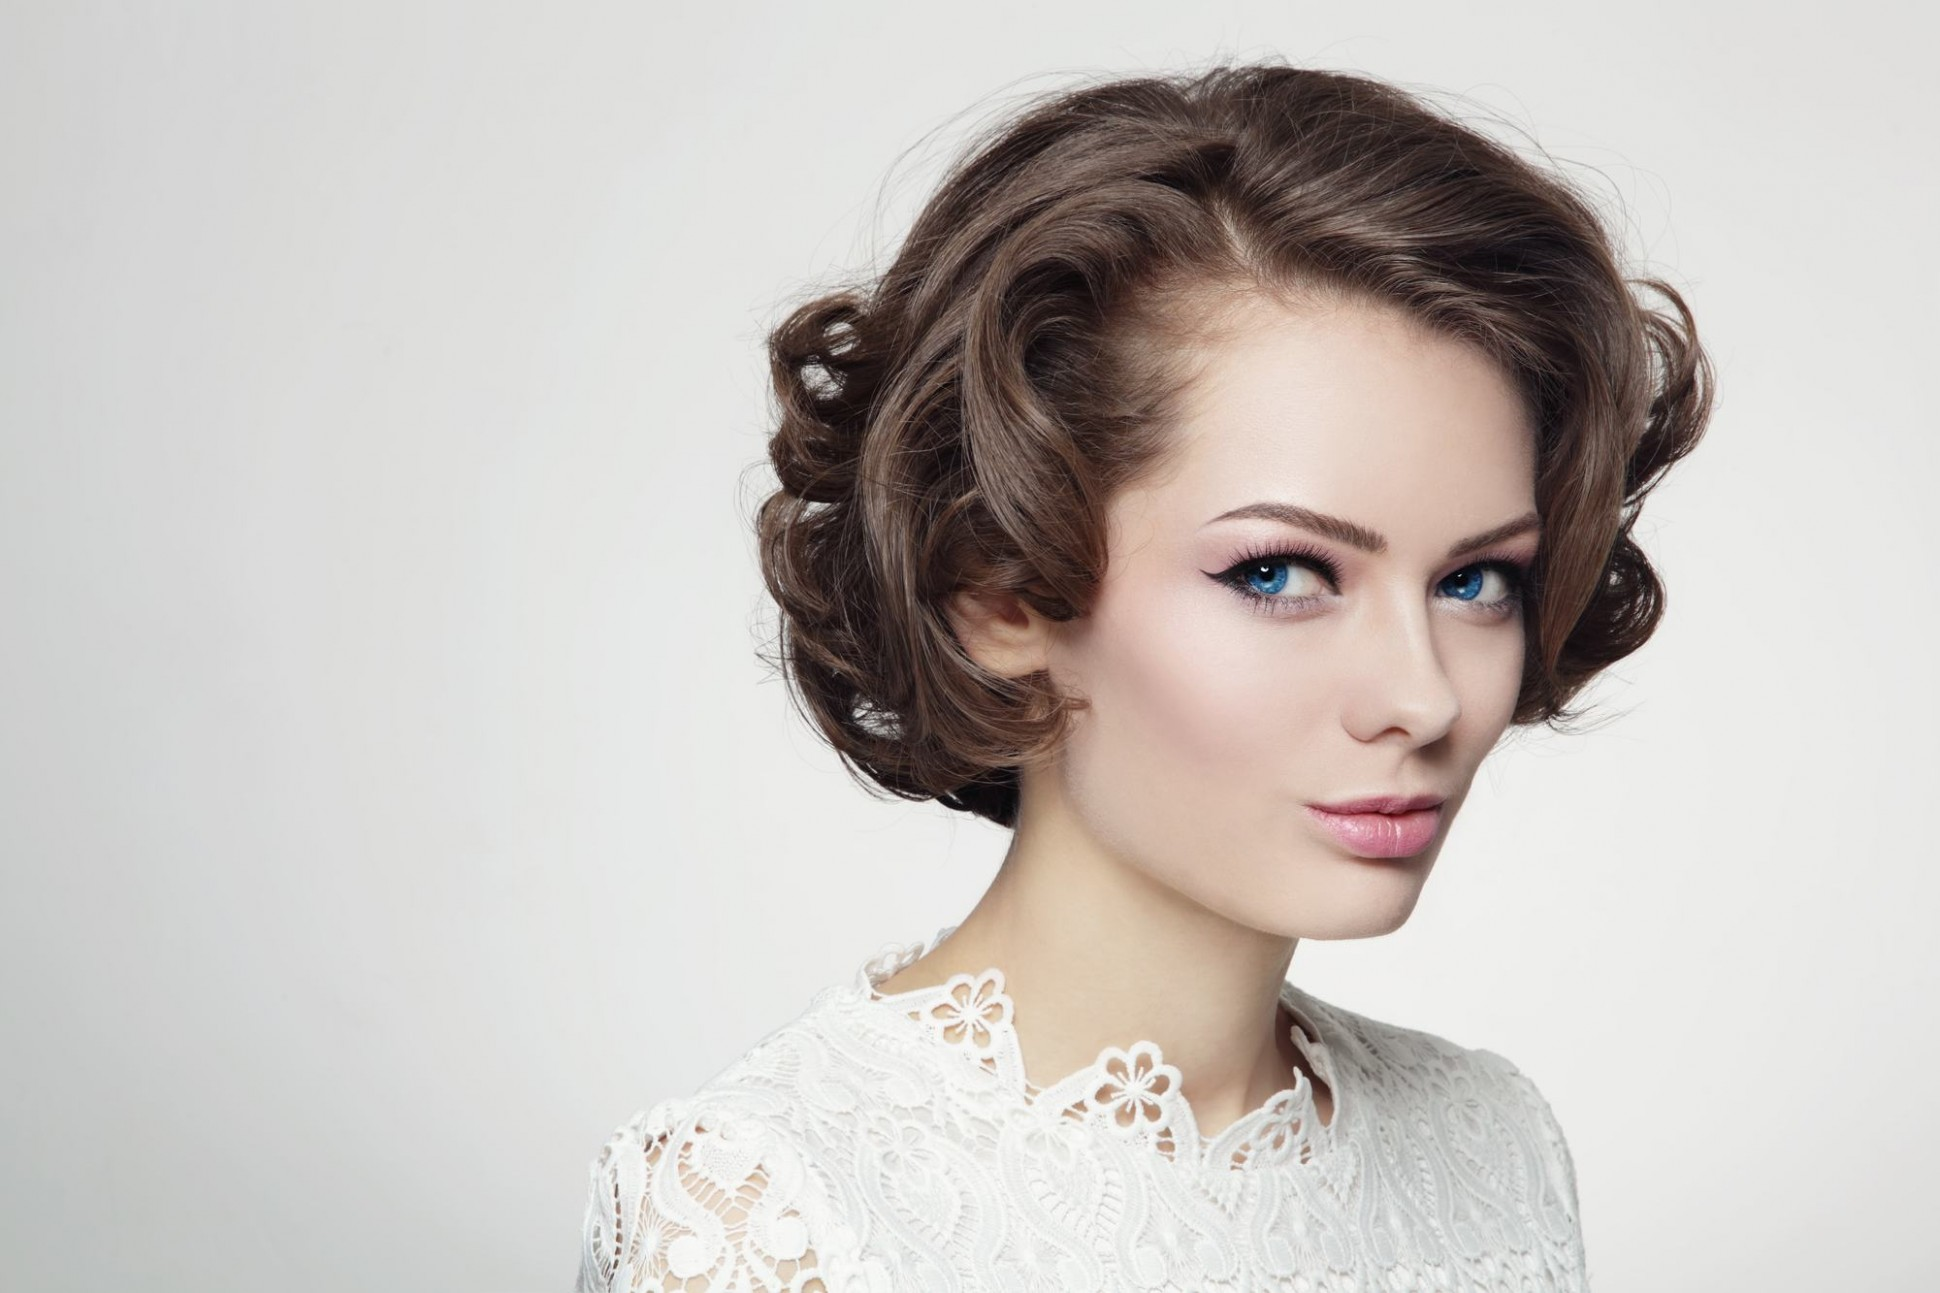 Vintage 8s Hairstyles: How To Re Create 8 Iconic Styles On Your Own 60S Curly Hair